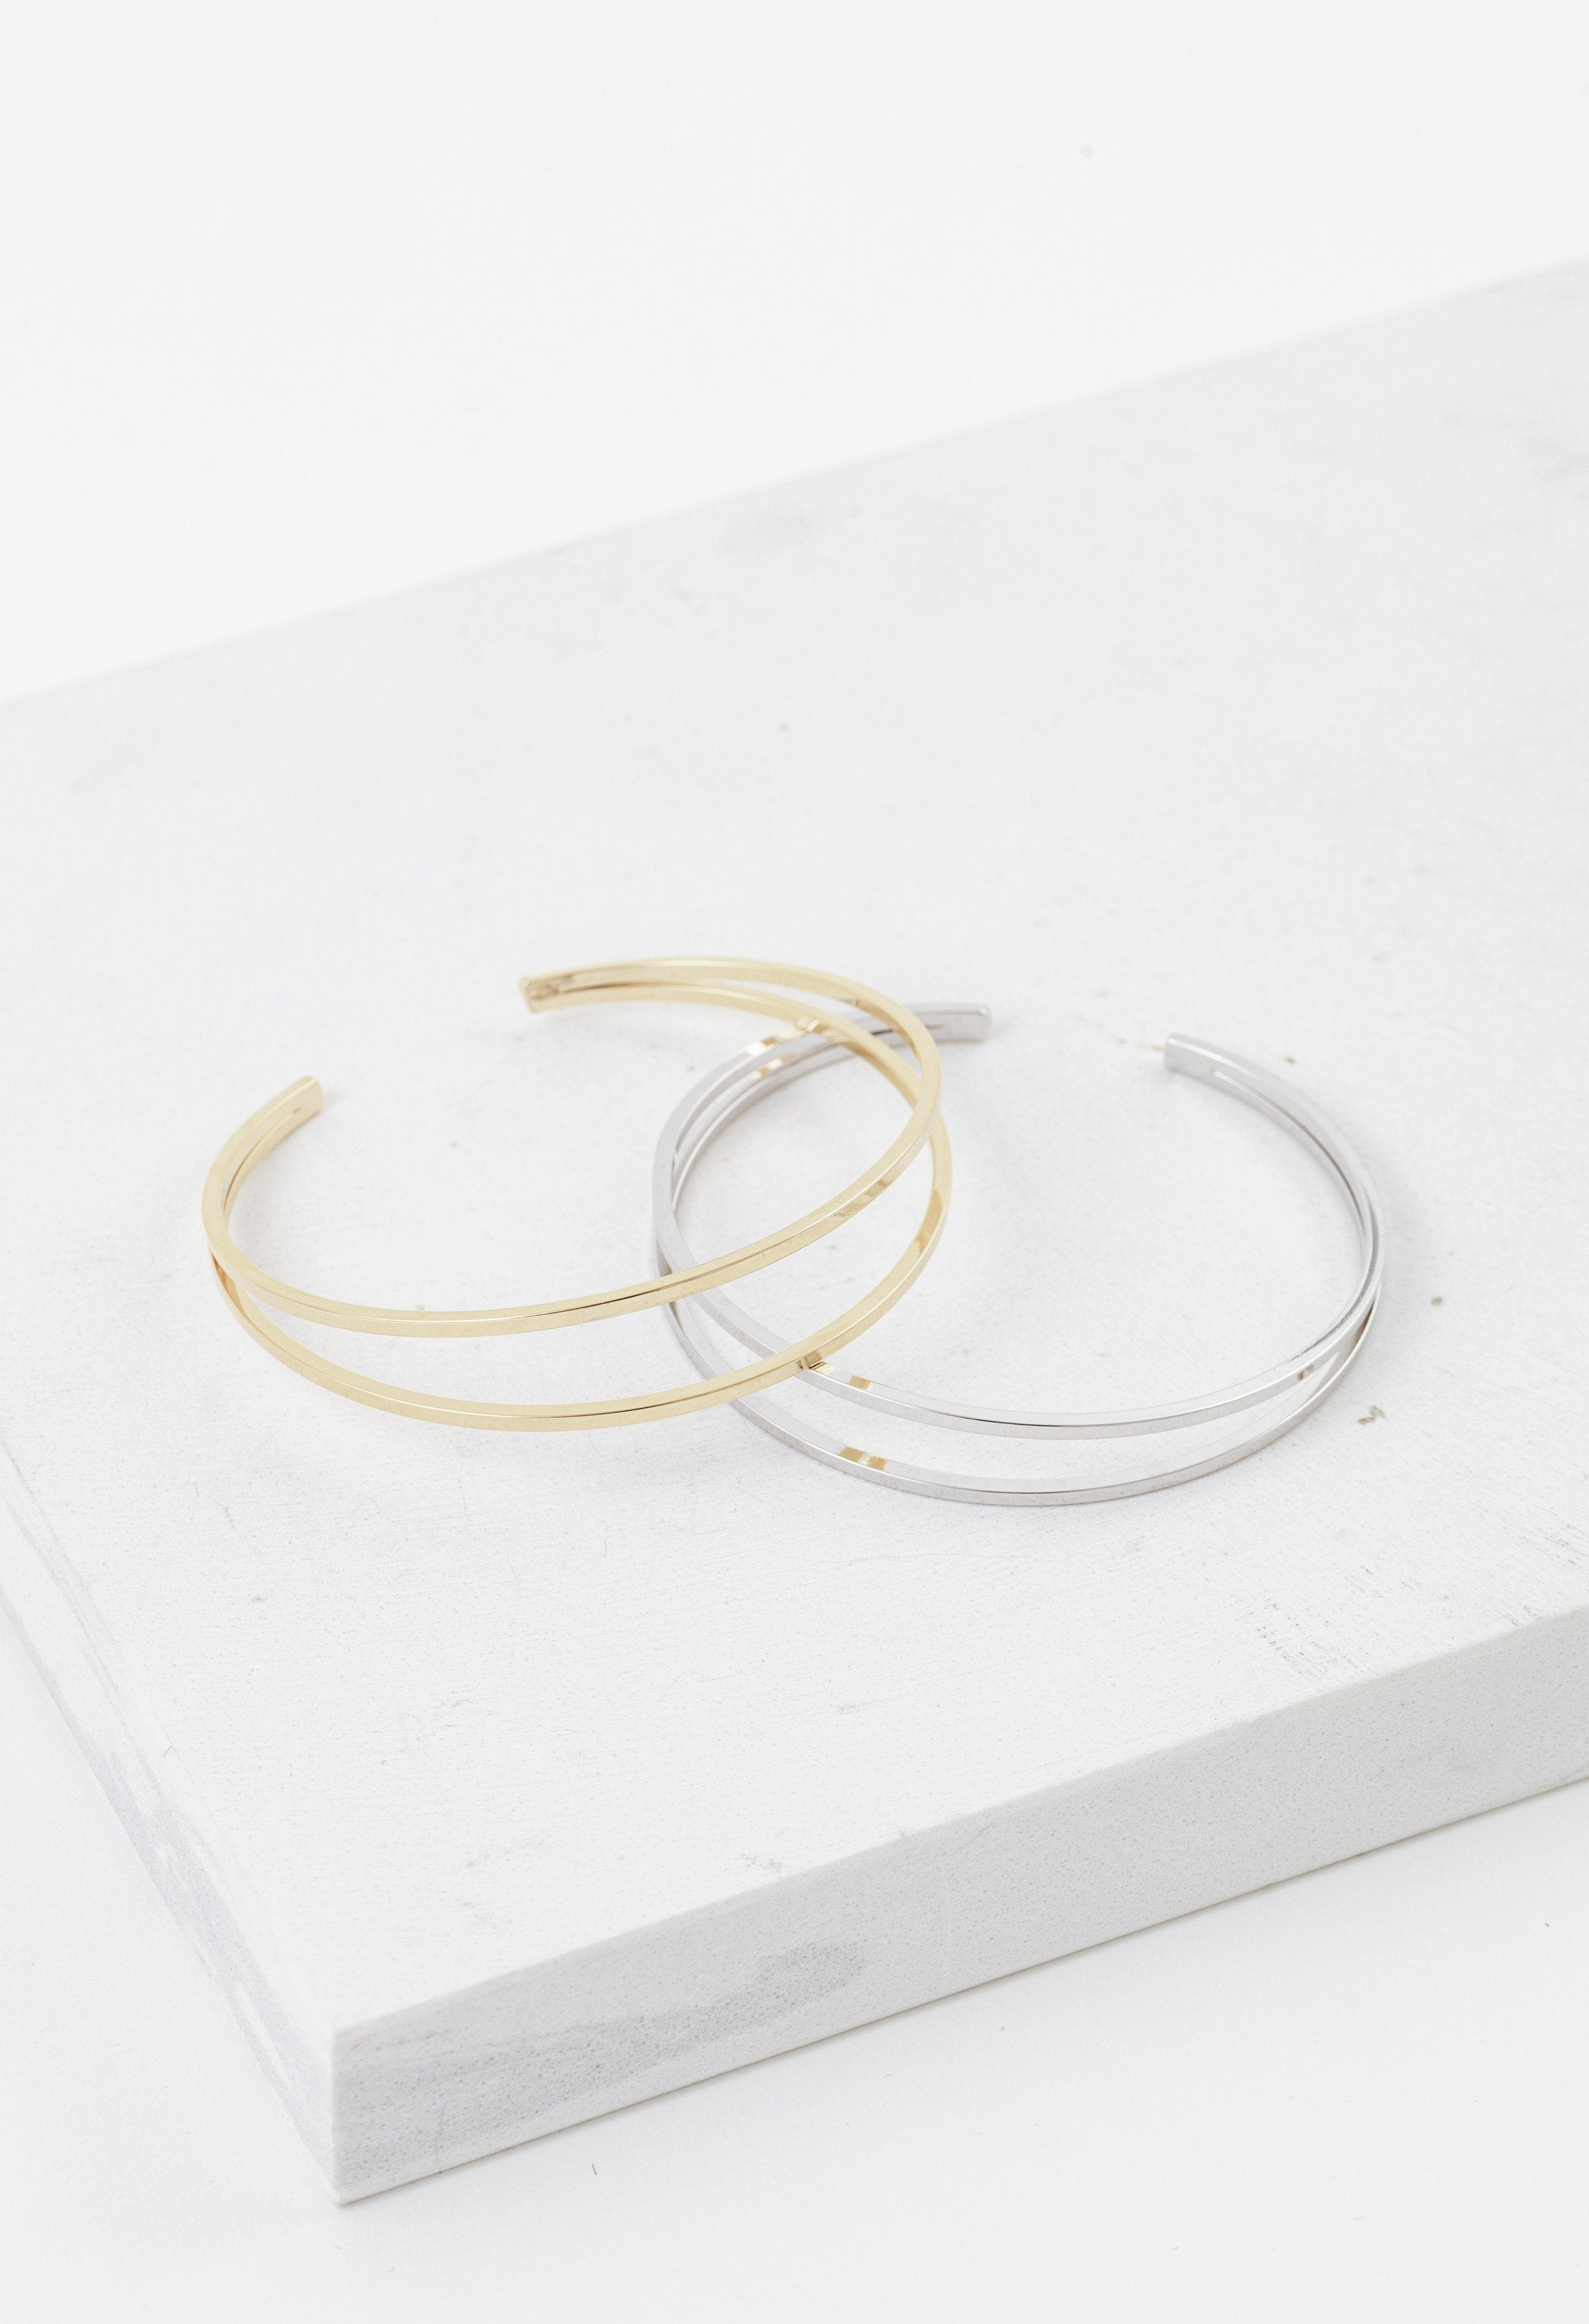 LOVER'S TEMPO - MAZI BANGLE IN SILVER